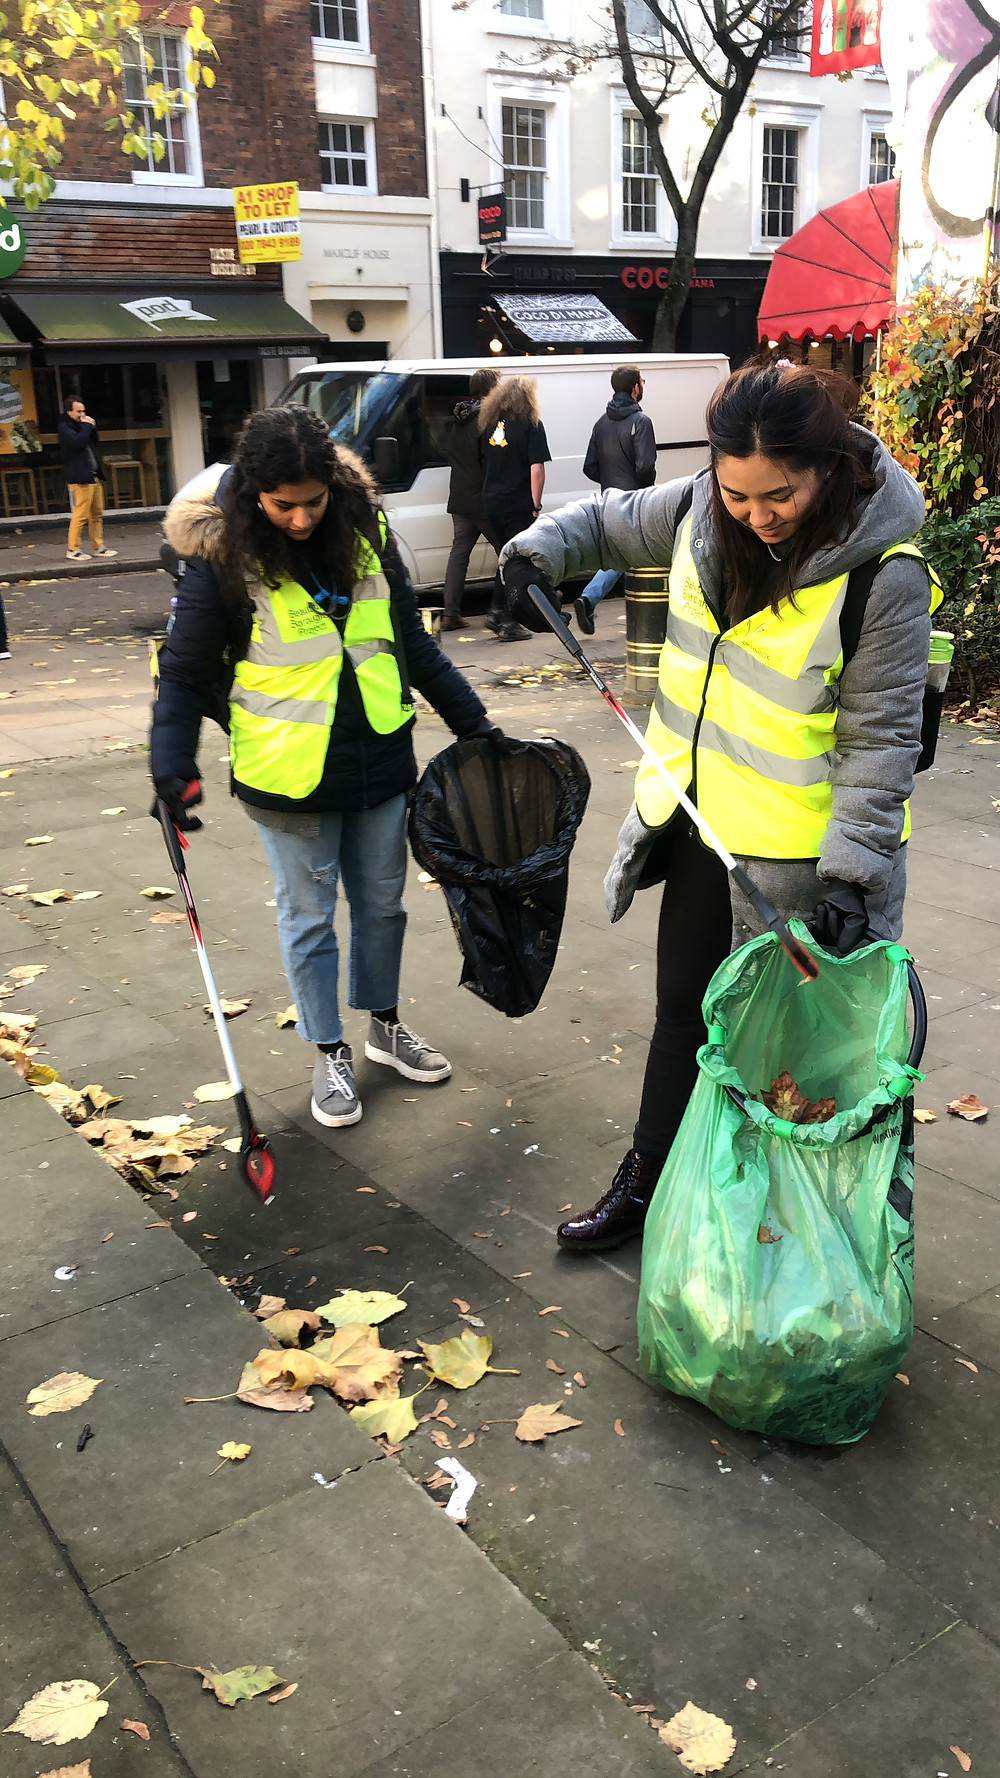 Two consultants from WBC cleaning the streets of London